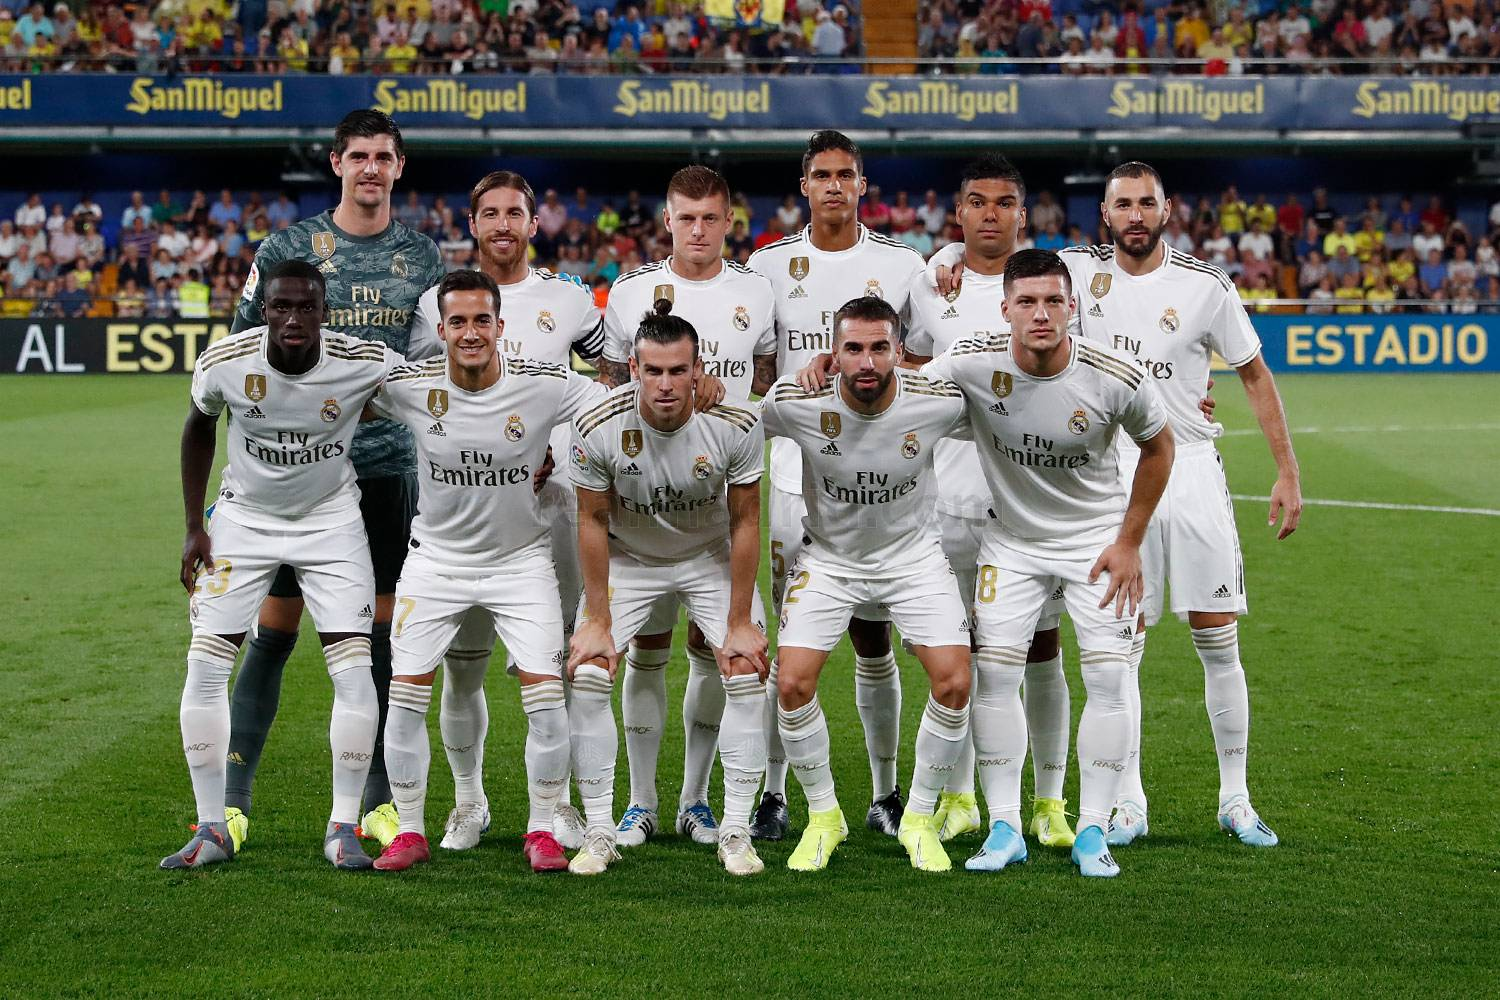 Real Madrid - Villarreal - Real Madrid - 01-09-2019